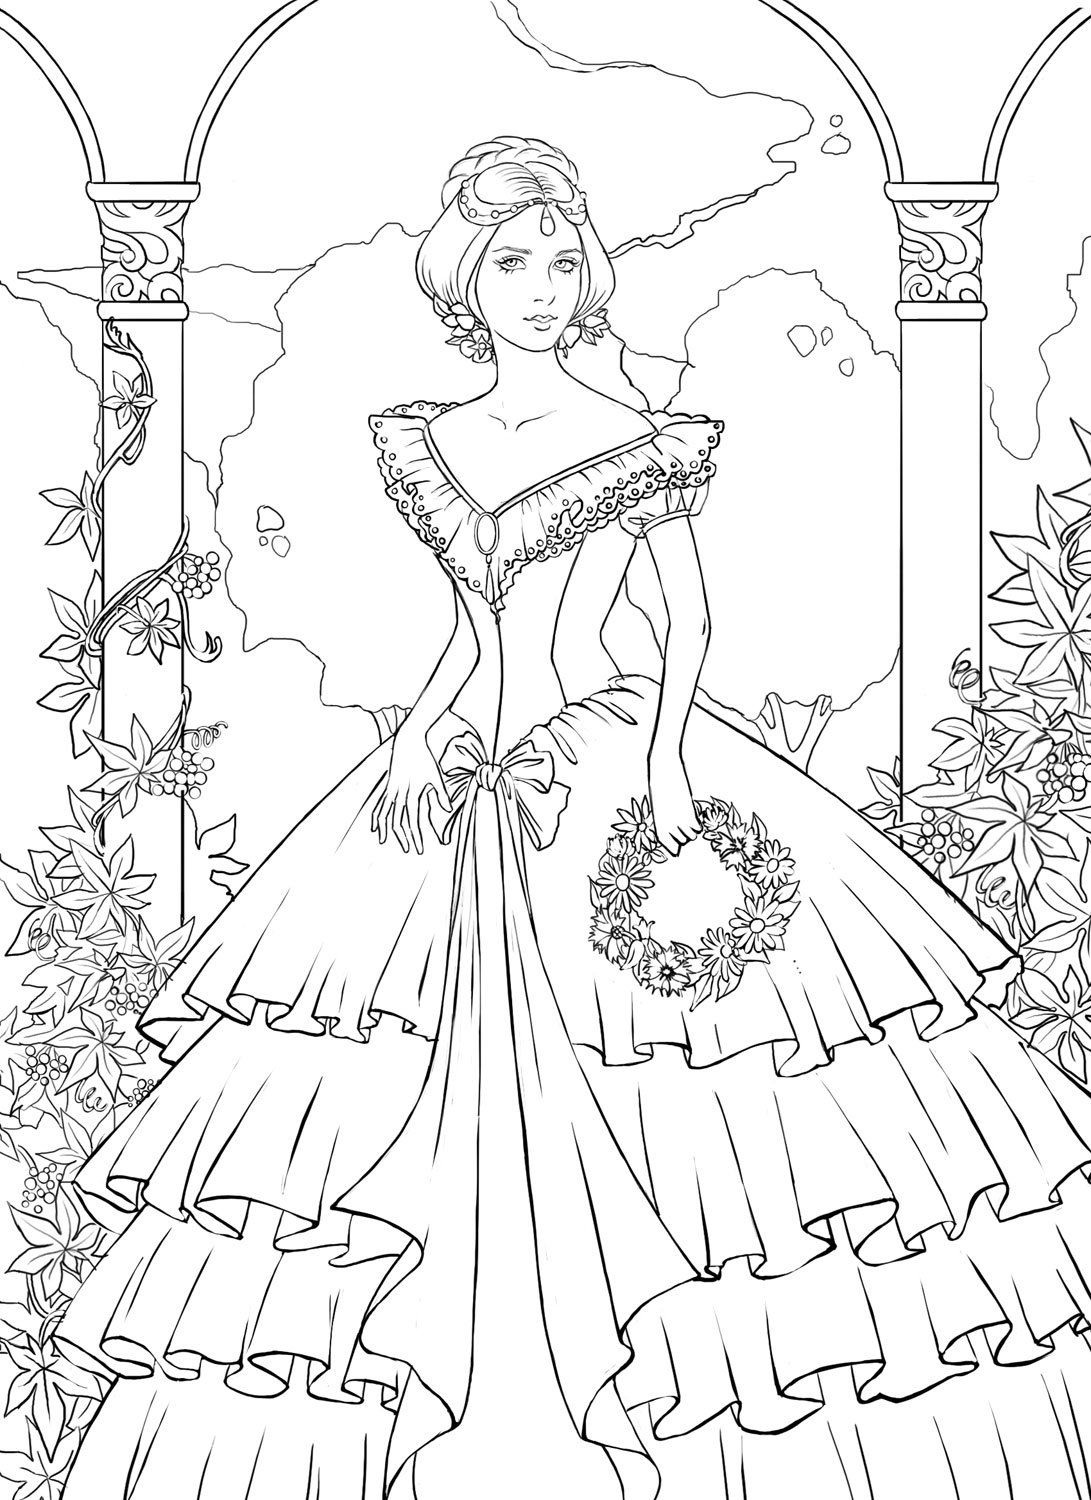 Intricate Coloring Page Detailed Coloring Pages Princess Coloring Pages Coloring Pages